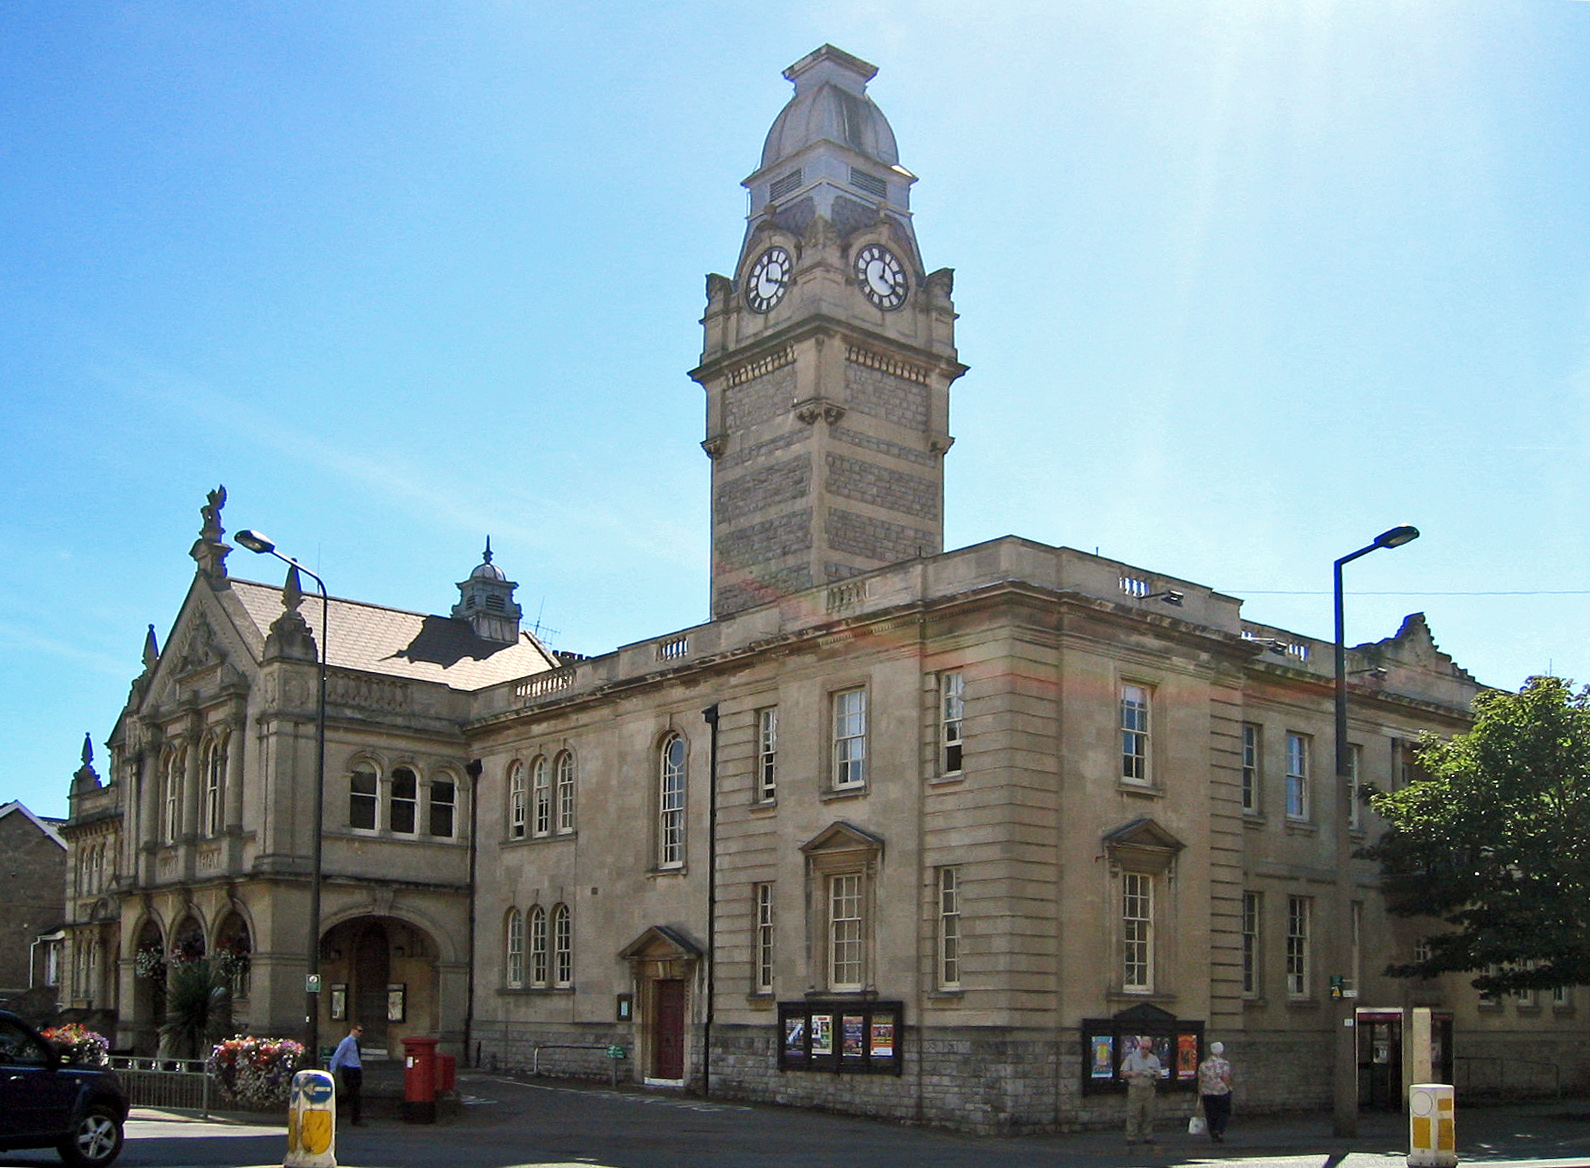 Stone building with colonnaded entrance. Above is a clock tower.